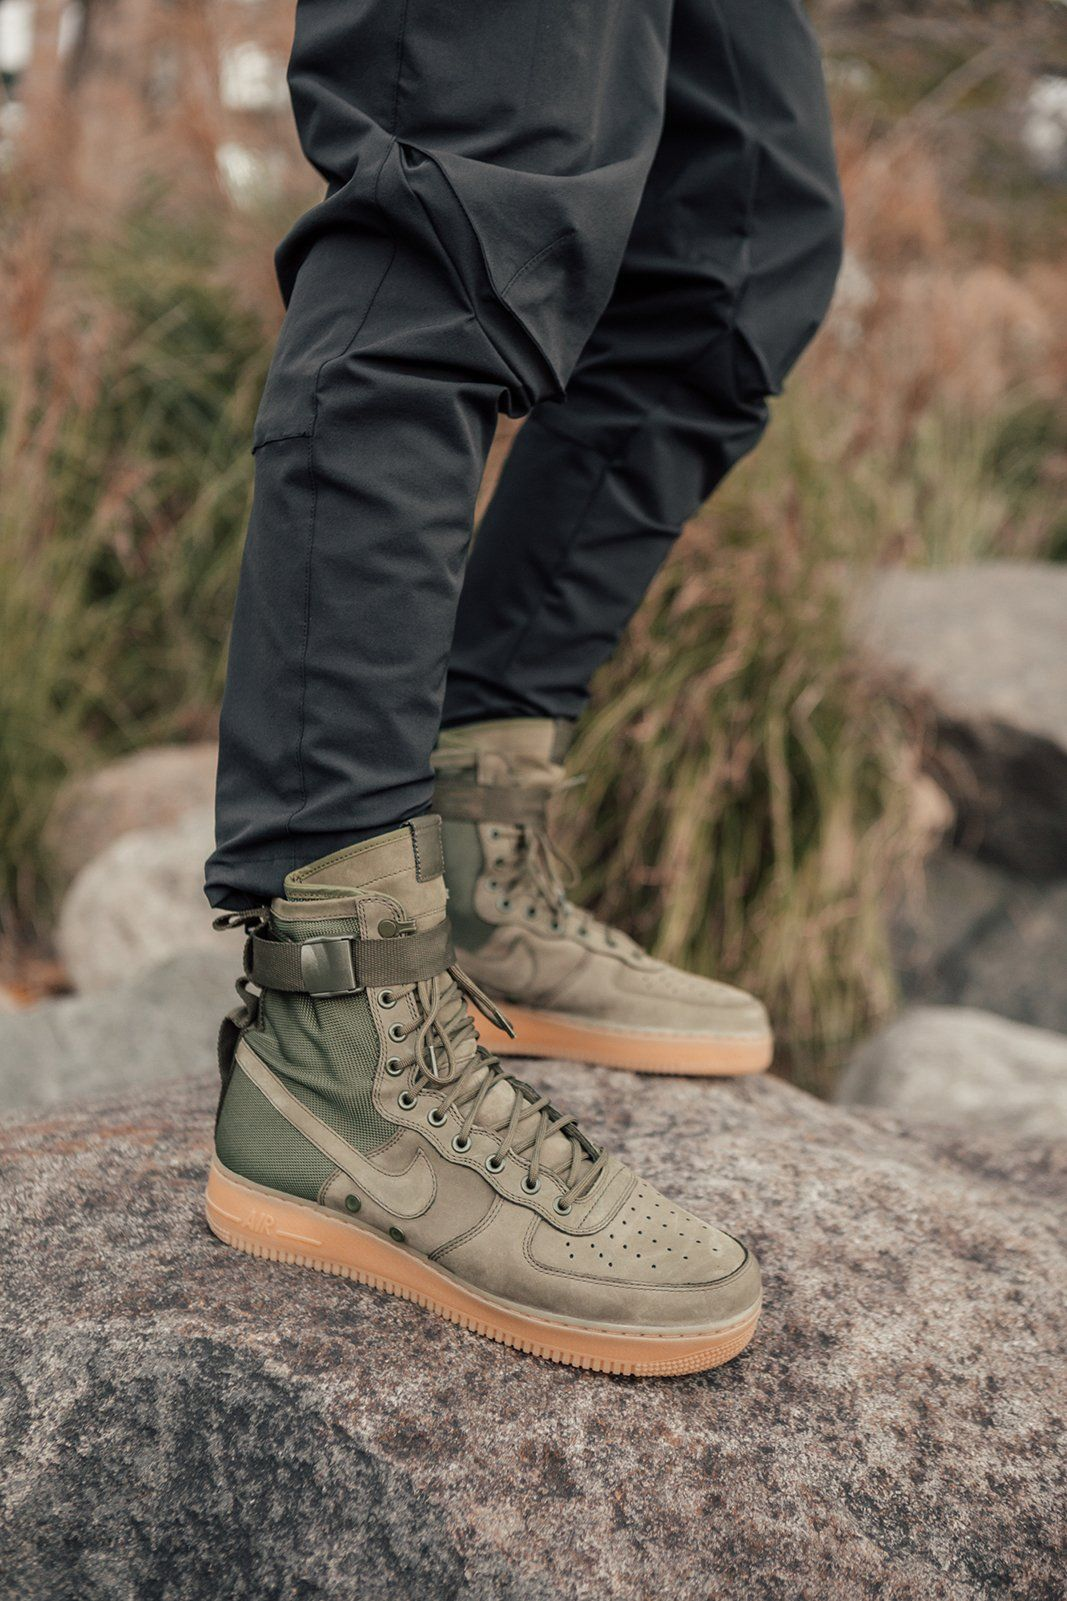 Kith Editorial For The Nike Sf Af1 Sneakers Men Fashion Nike Sf Af1 Mens Fashion Rugged